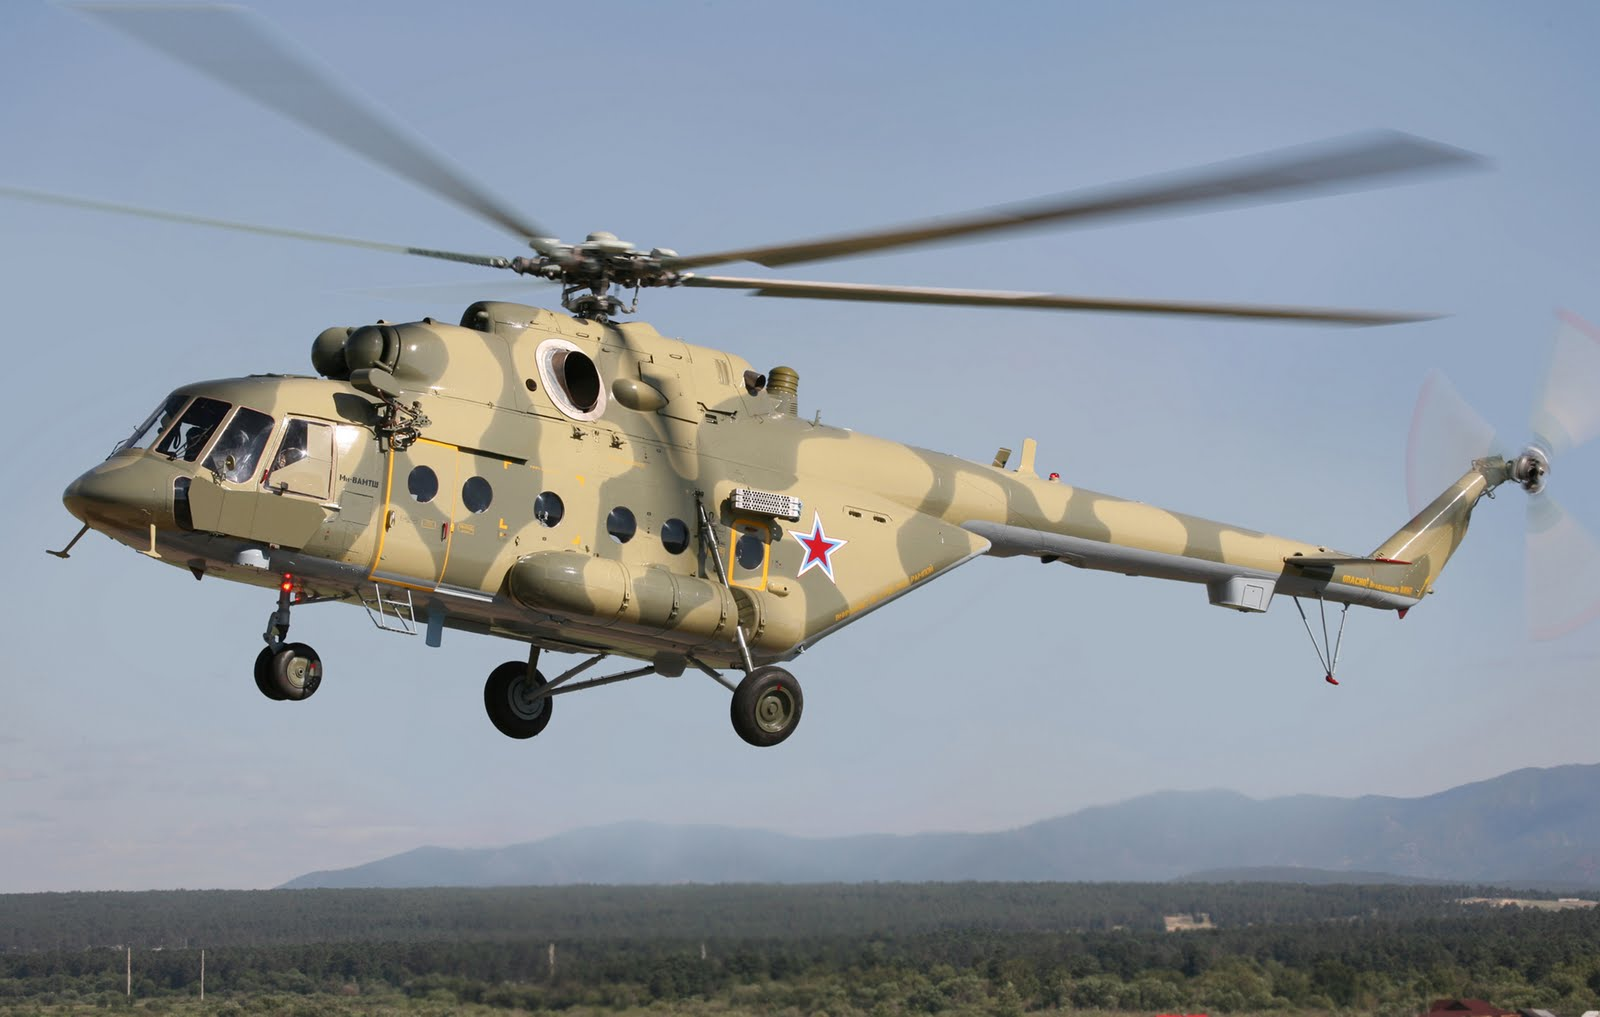 military helicopter two rotors with No New Helicopters For Struggling Afghan Air Force on The Definitive Collection Of Secret Nazi Weapons together with Uh 72 Pics besides 3 56 in addition 4 Chinook Twin Rotor Heavy Lift also Concept Helicopters Hovercopters.